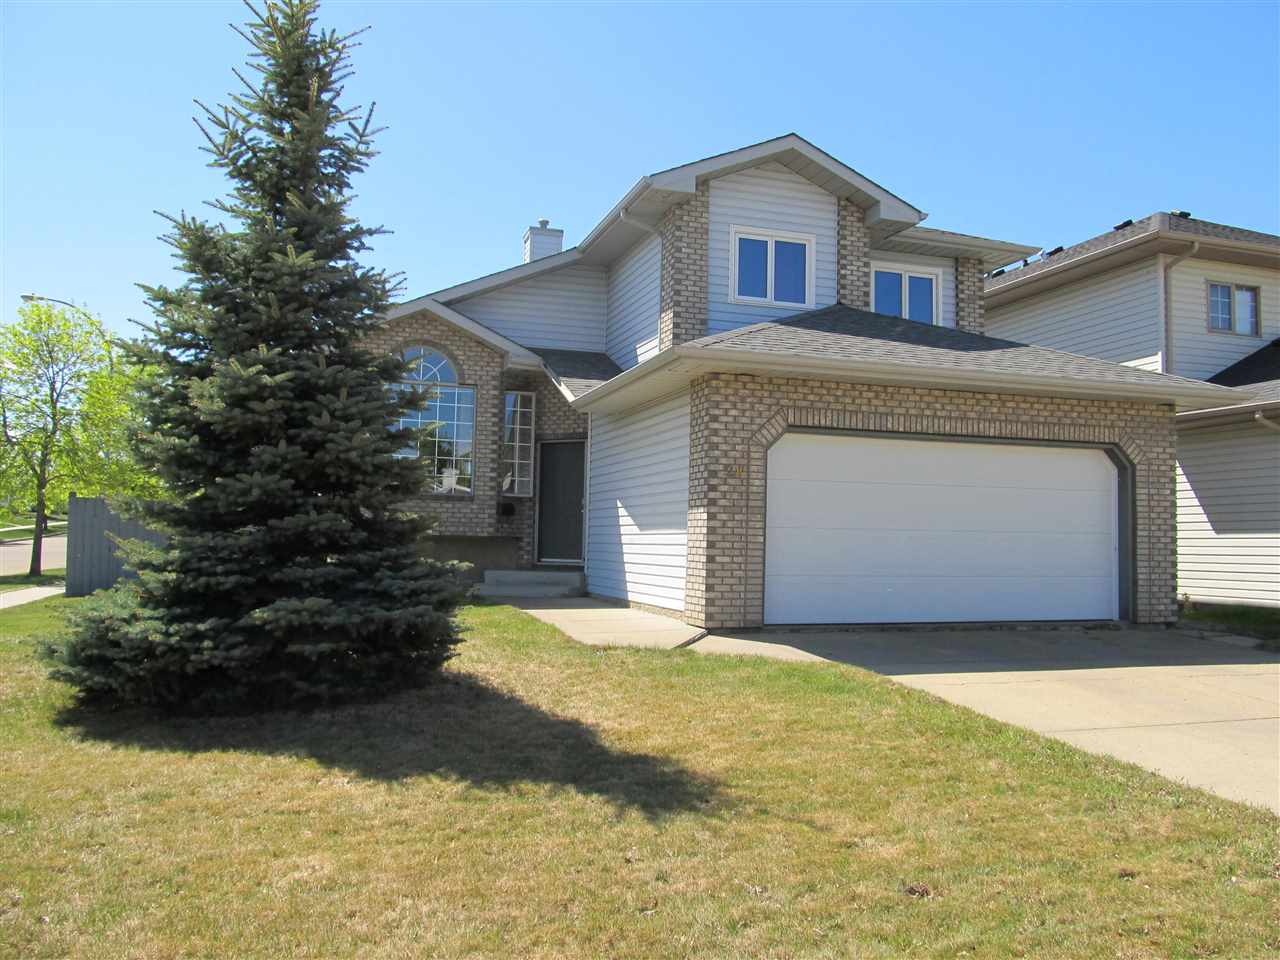 Main Photo: 28 CACTUS Way: Sherwood Park House for sale : MLS®# E4112094